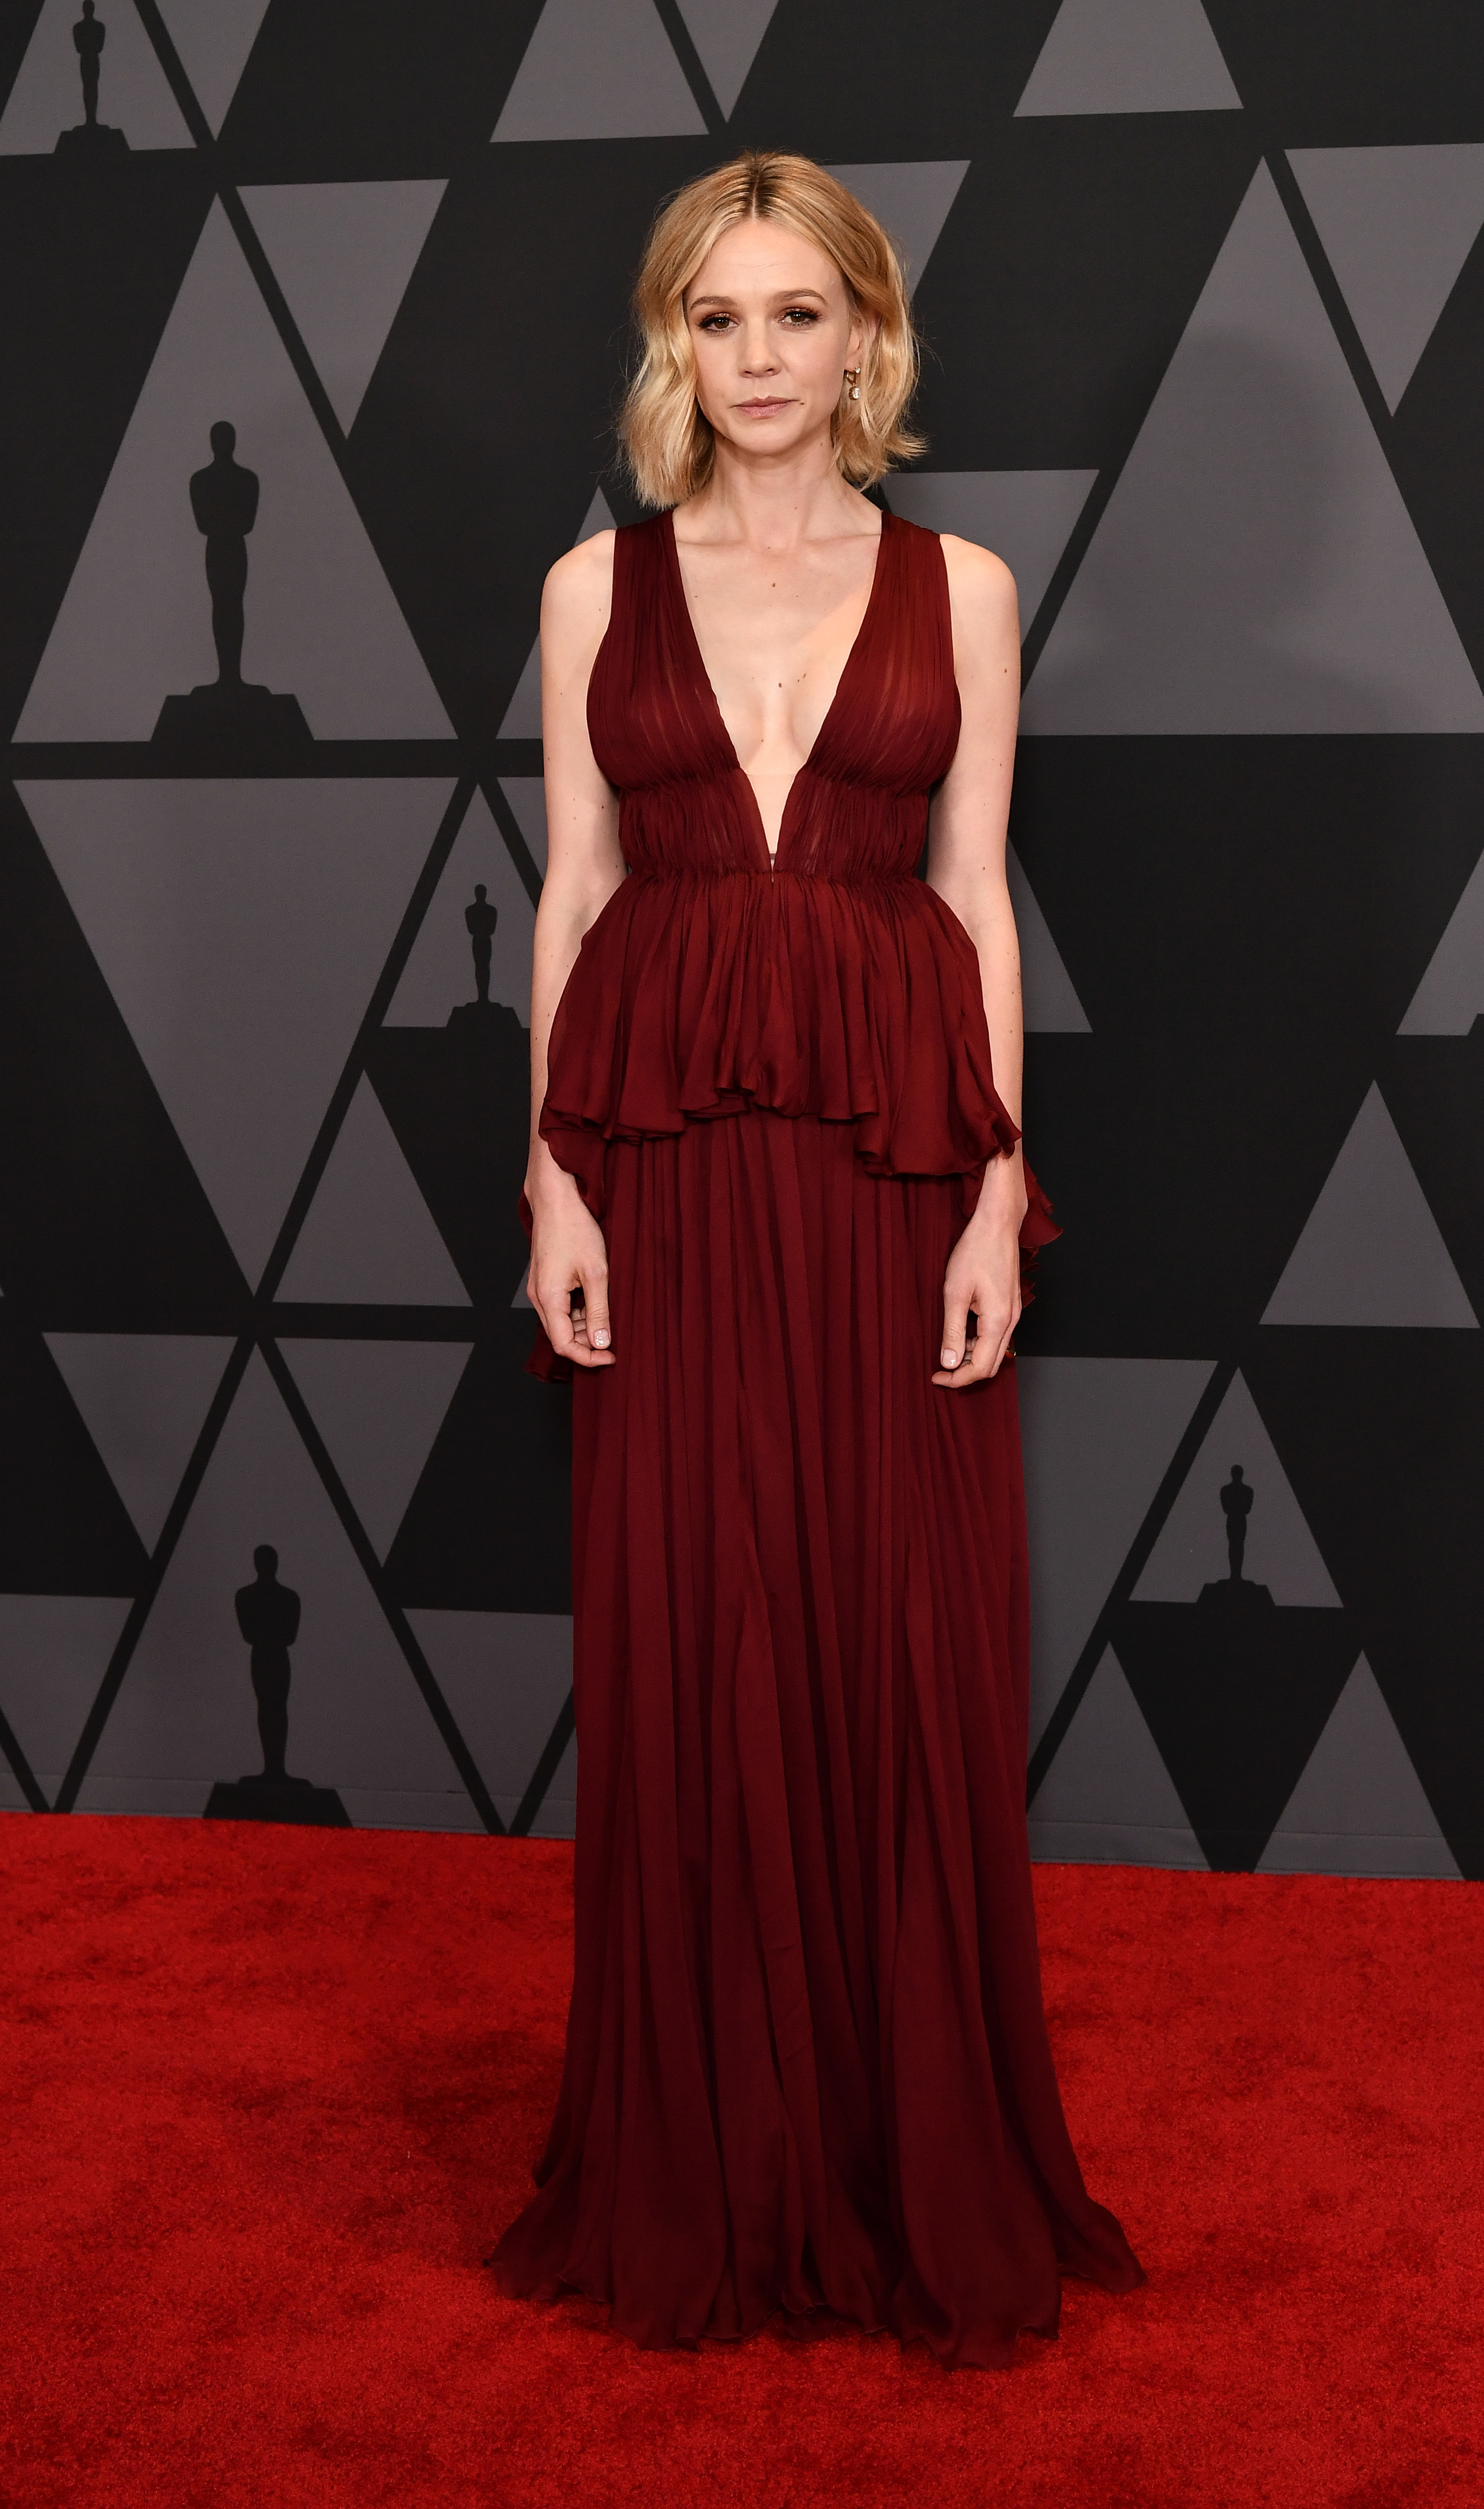 Carey Mulligan attends the 9th Annual AMPAS Governors Awards in Los Angeles on Nov. 11, 2017.